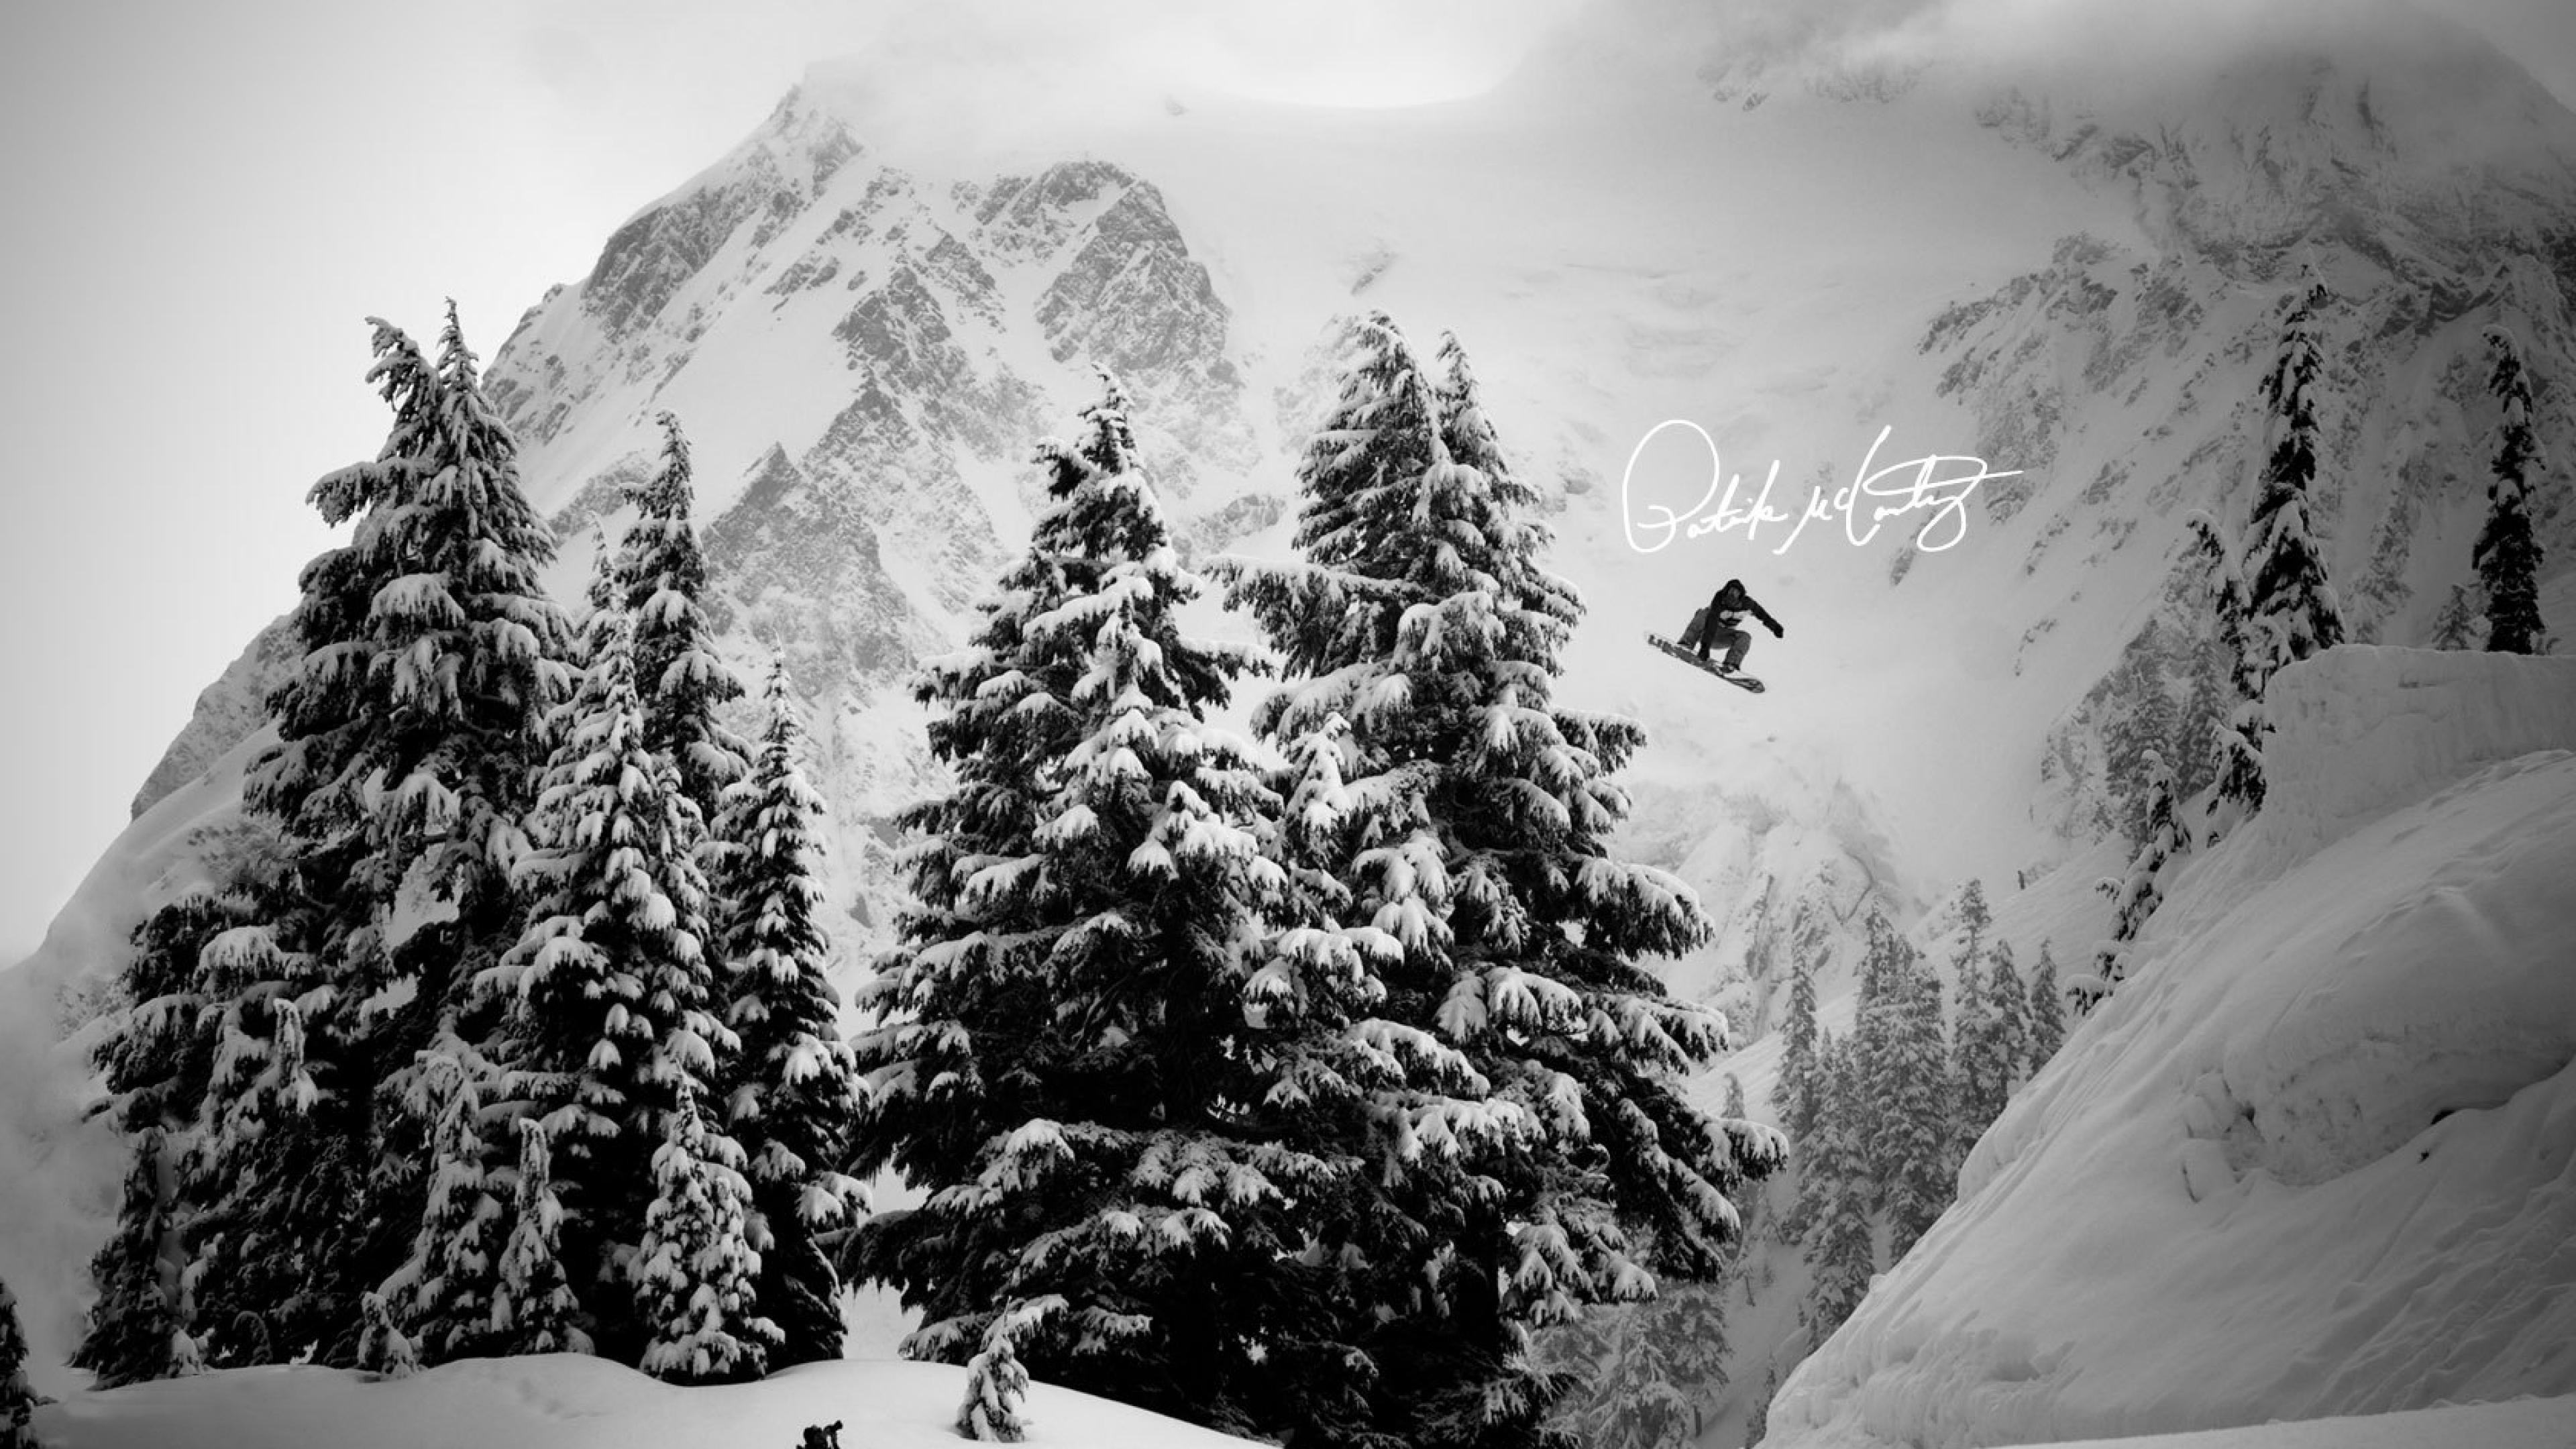 Snowboarding Wallpaper 71 Pictures